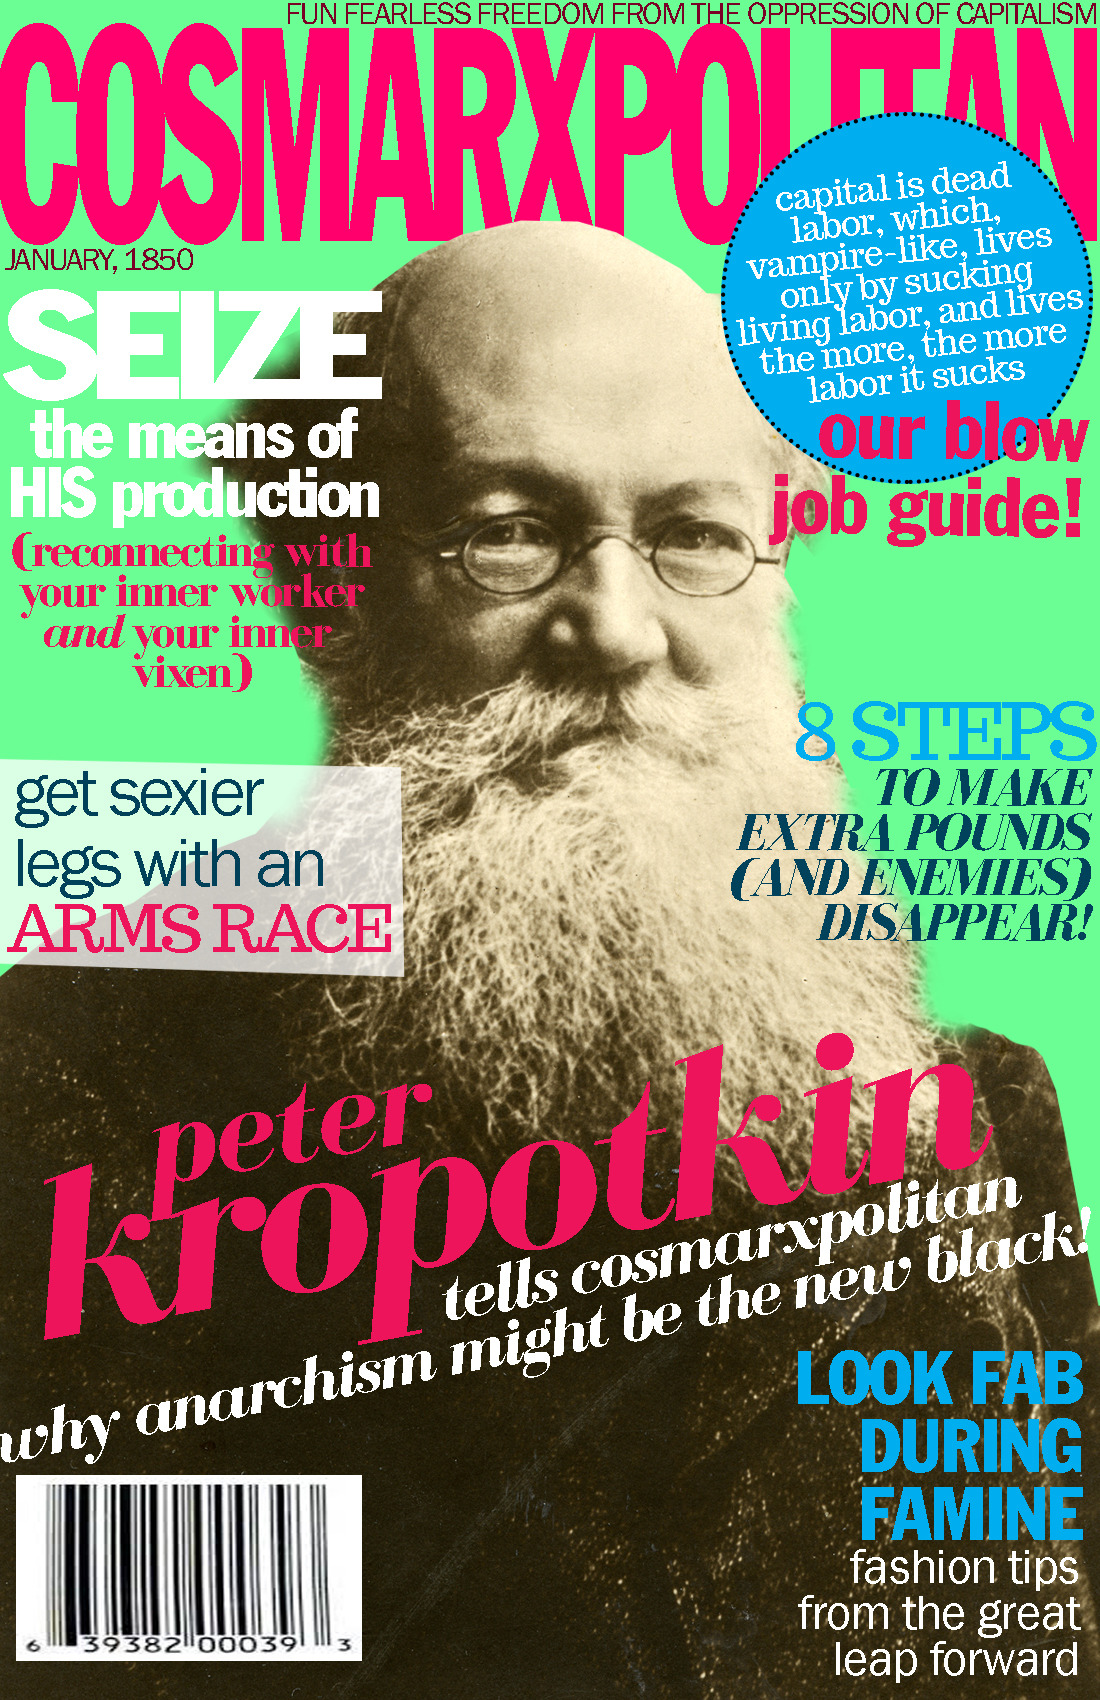 cosmarxpolitan:  Cosmarxpolitan, Issue 6 8 steps to make extra pounds (and enemies) disappear  So great